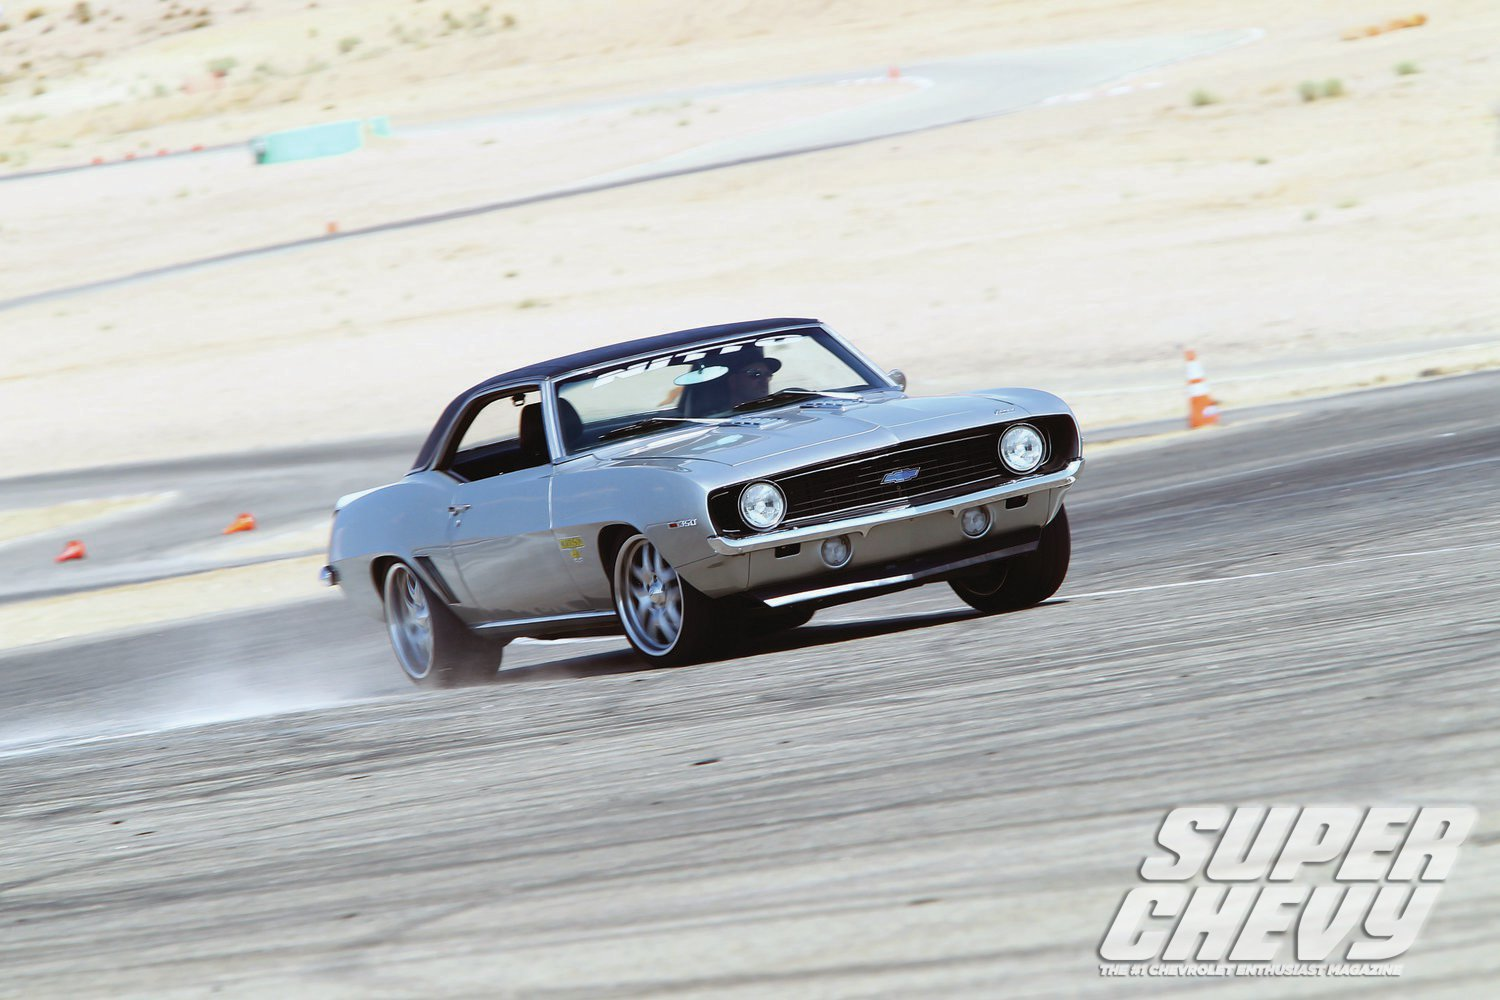 Super Chevy Suspension & Handling Challenge 2013 - Willow Springs